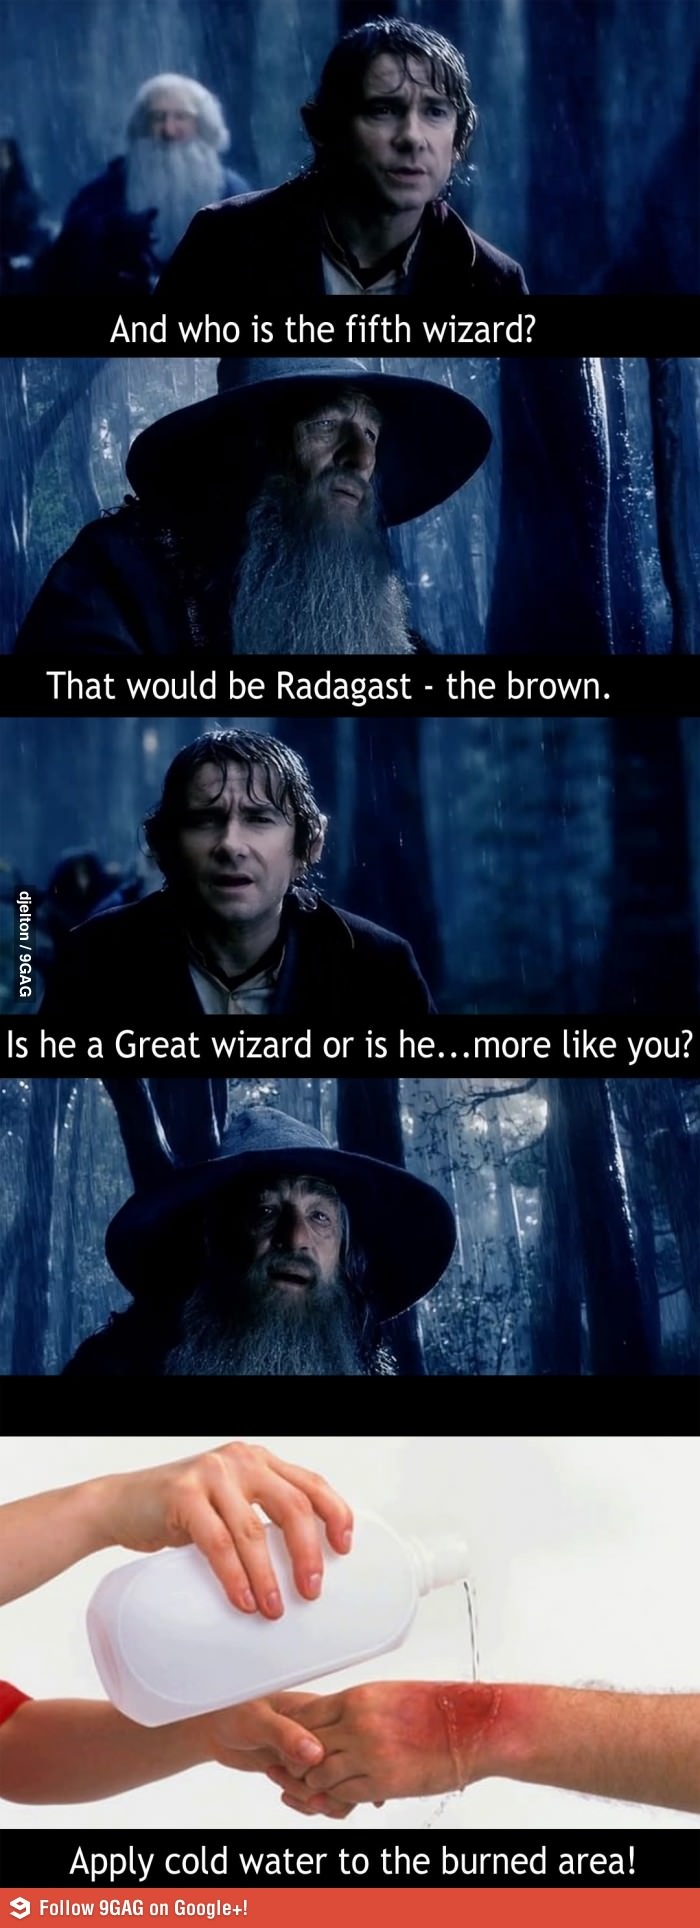 OUCH, Bilbo! That was a bit harsh!--he obviously doesn't know what he is talking about, i mean Gandalf is the best!!